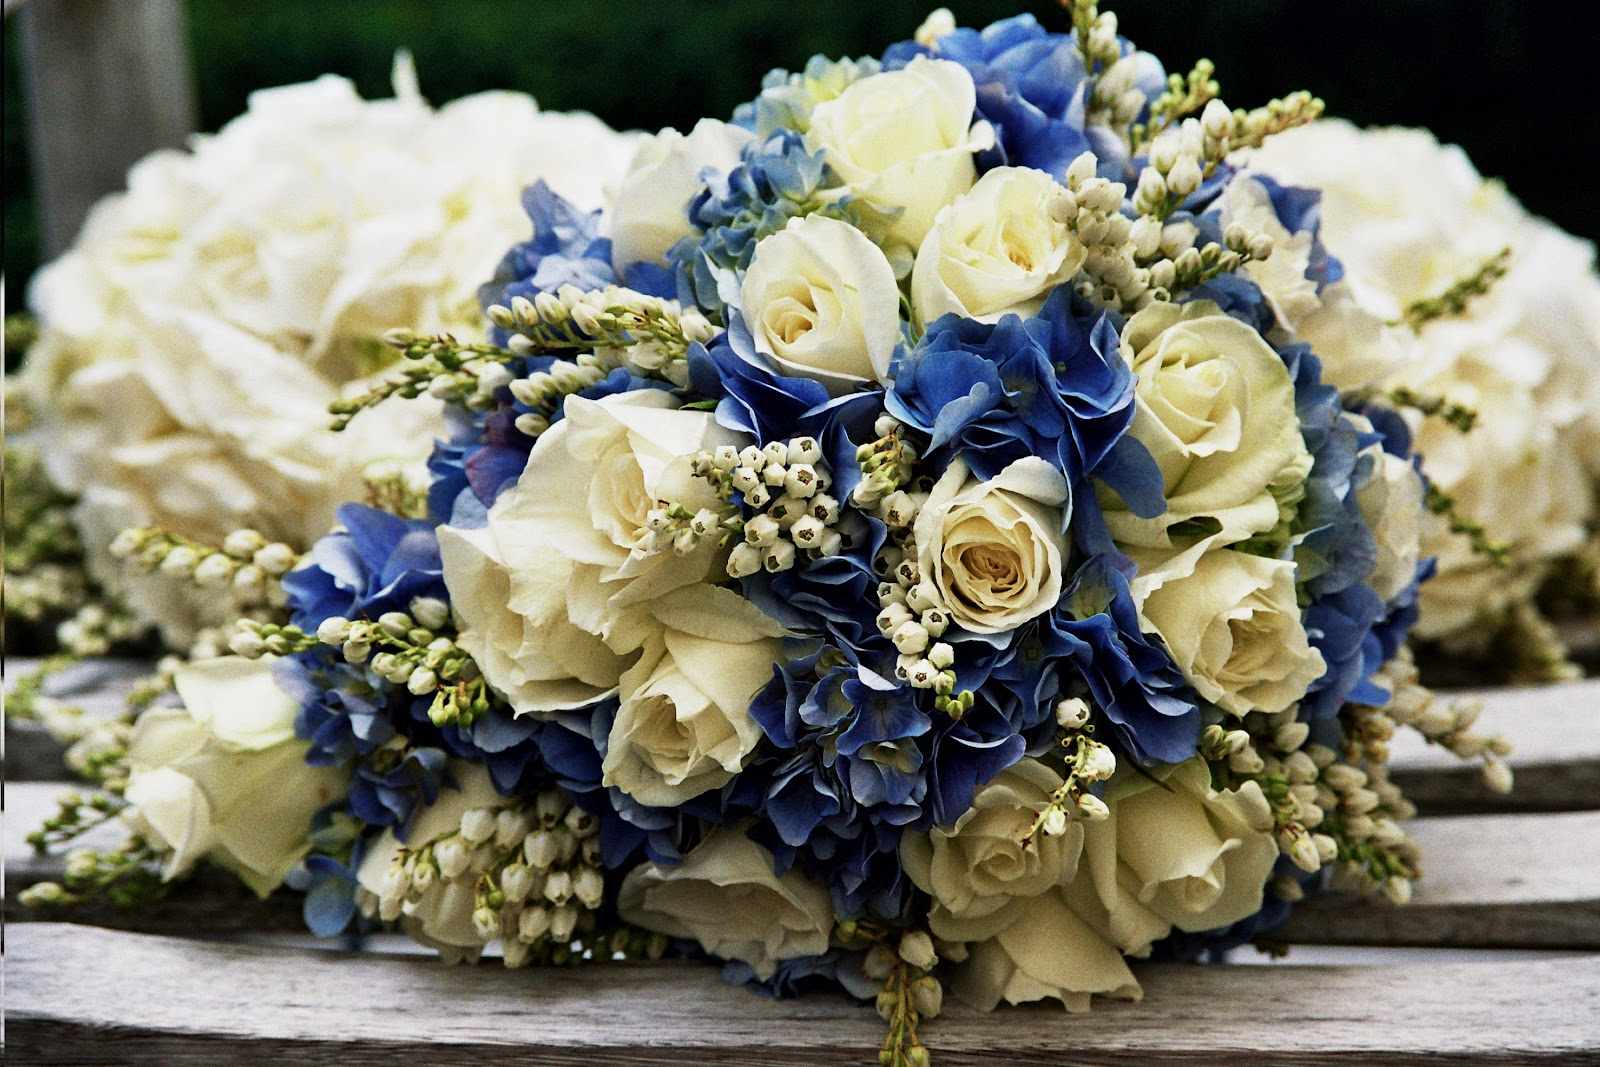 Tags: blue, bouquet, bridal,